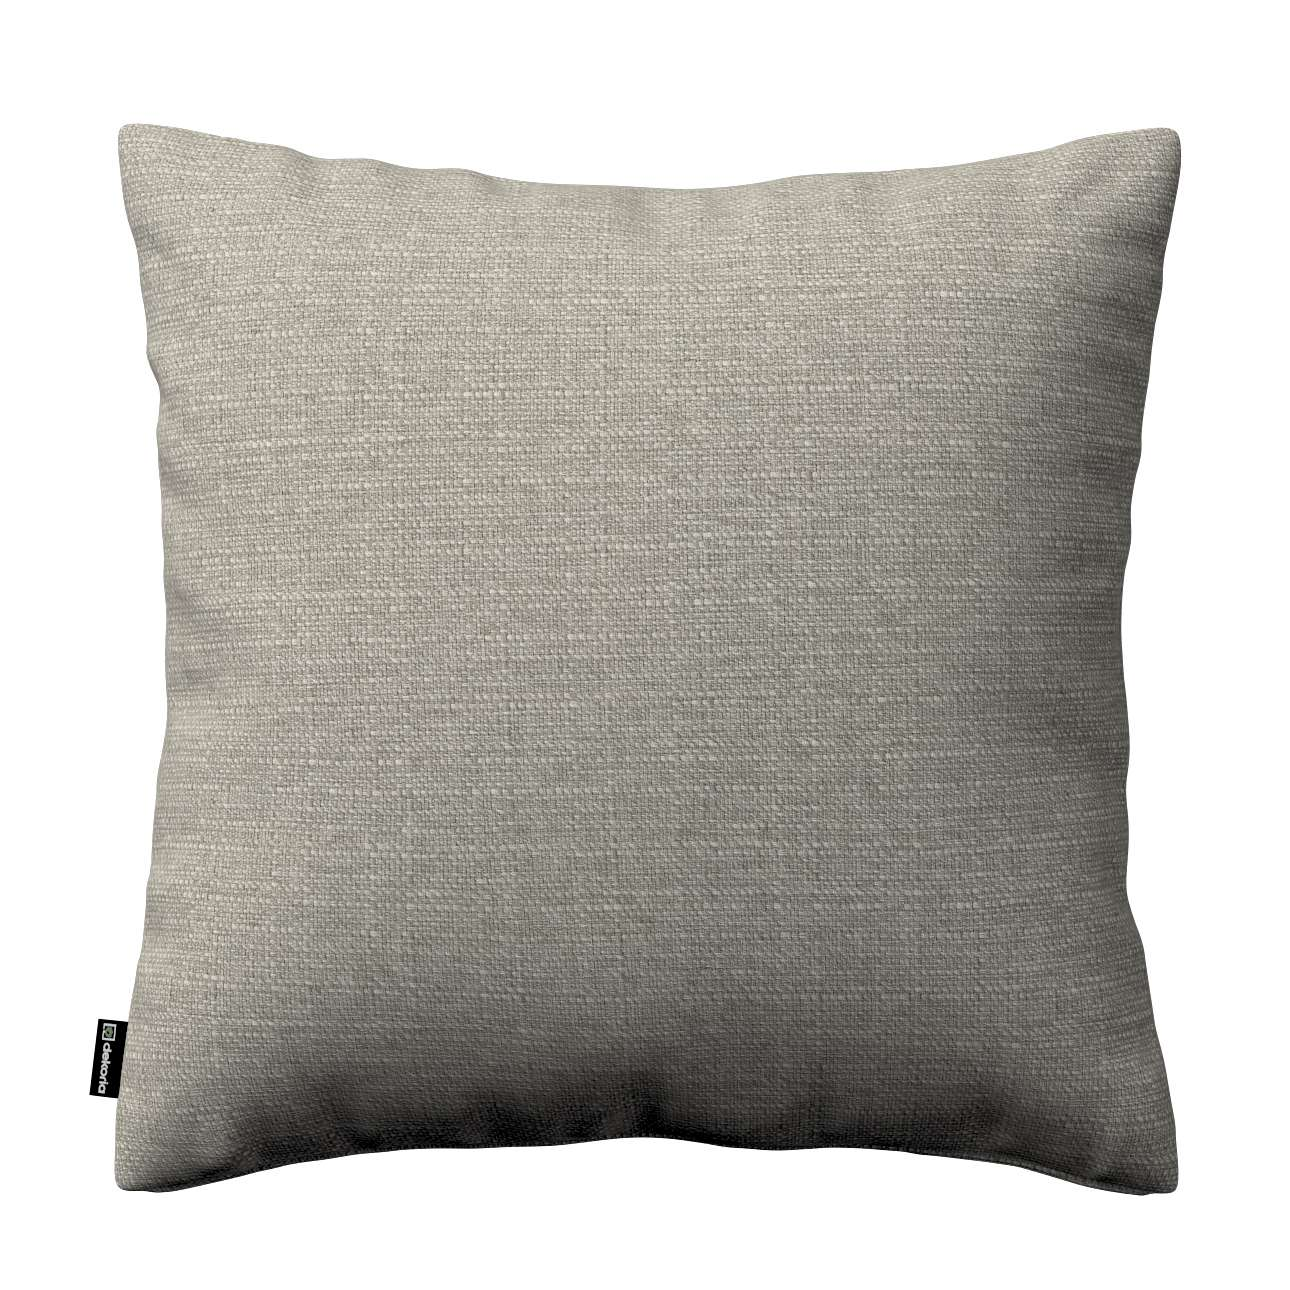 Kinga cushion cover 43 x 43 cm (17 x 17 inch) in collection Granada, fabric: 104-91